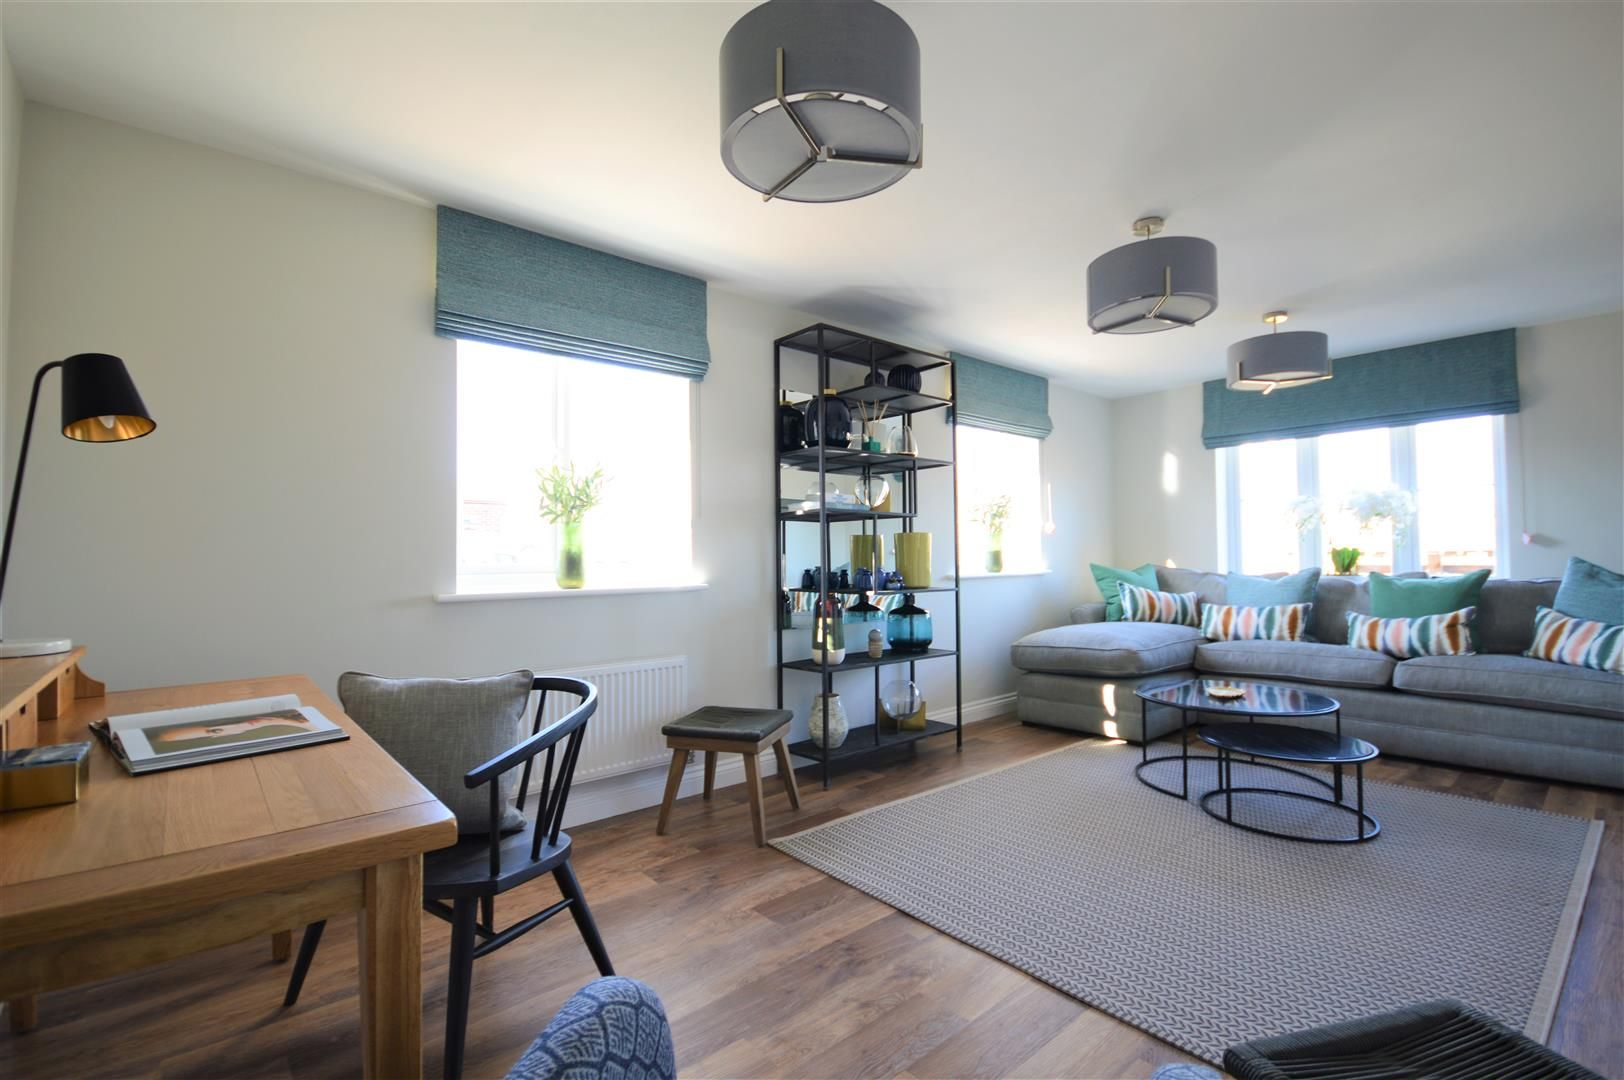 3 bed detached for sale in Kingstone 3